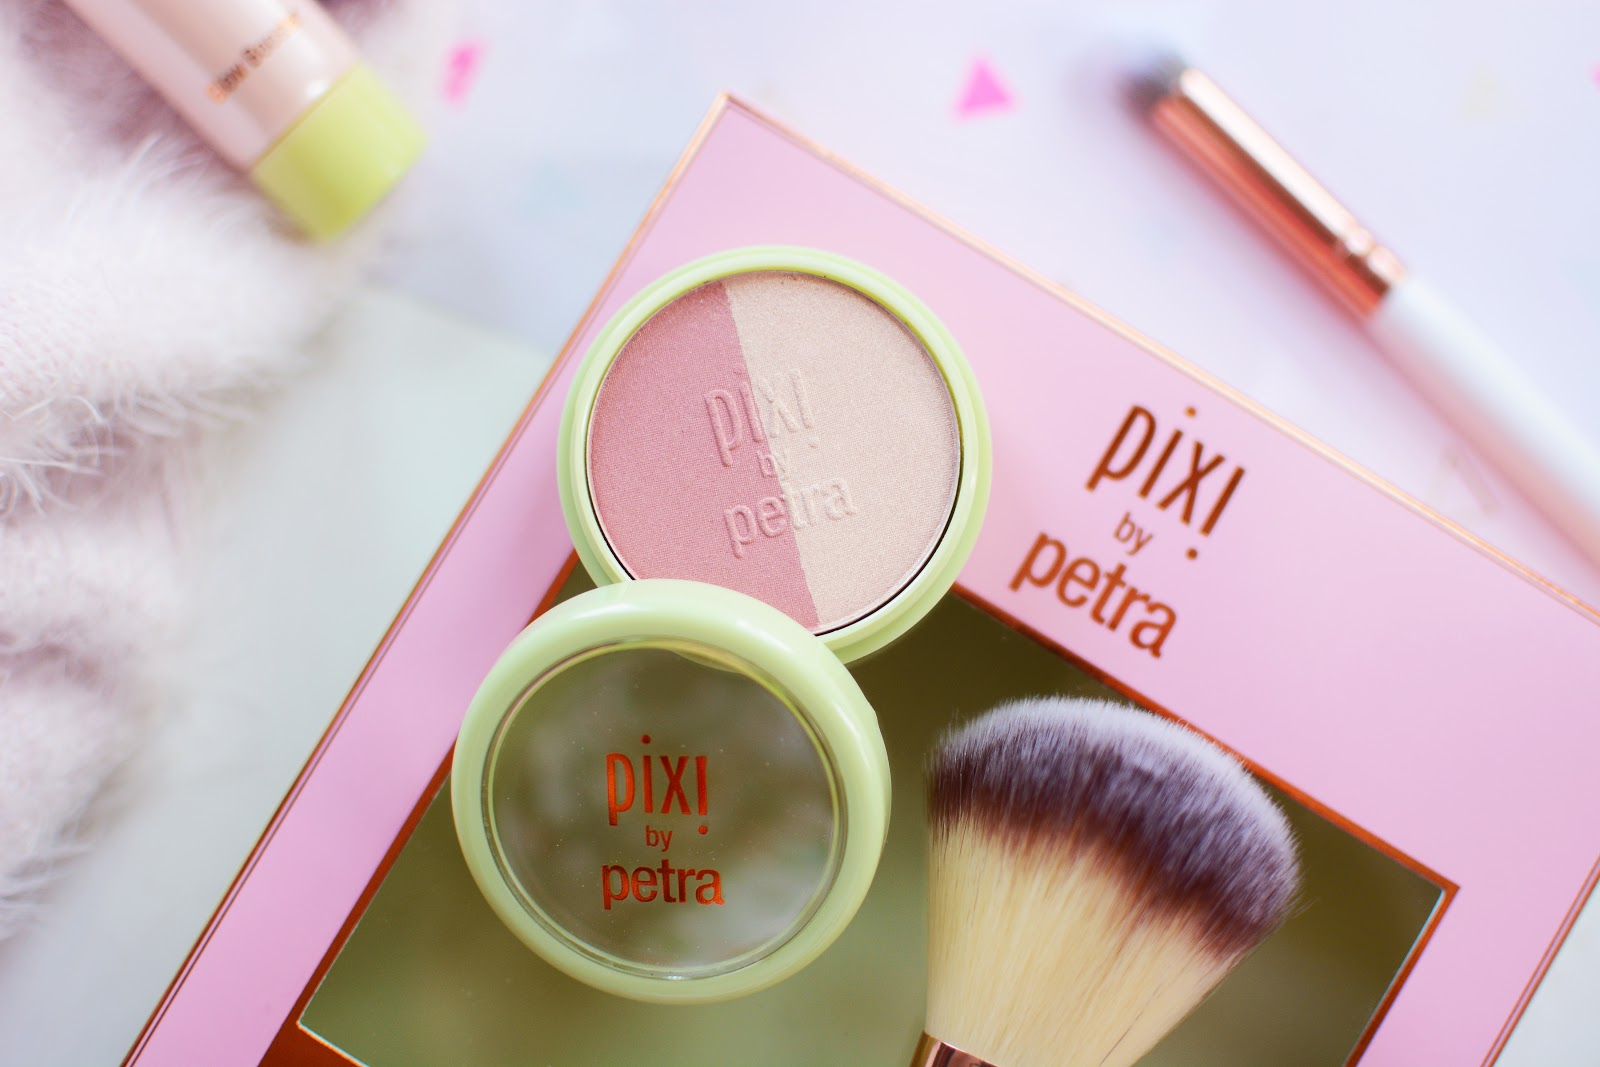 pixi by petra Beauty Blush Duo in Rose Gold